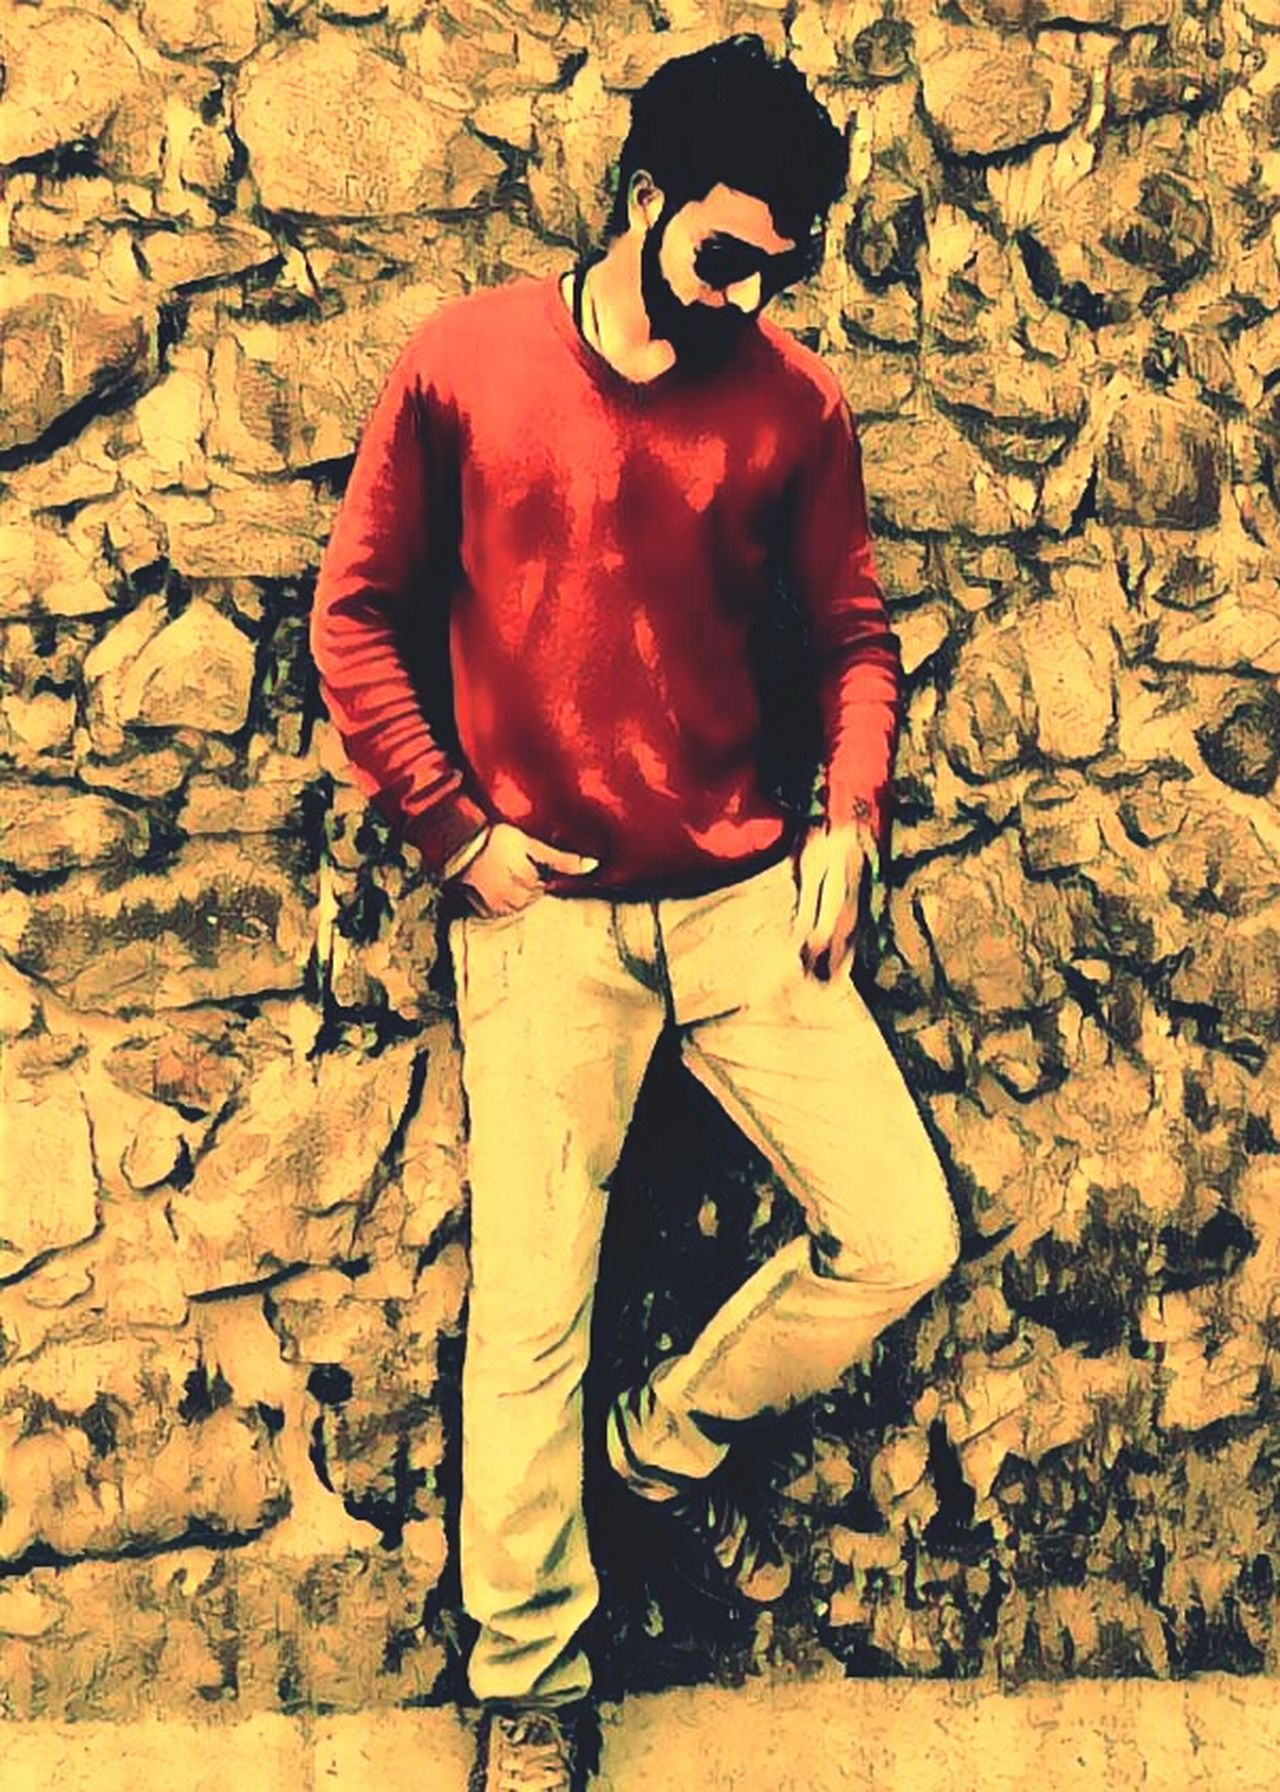 Uniqueness Hackerpandit With Saurabh Saurabh Stylish Saurabh Dubey Dangerous Rockstar Sad Boy Looking Into The Past Sad & Lonely Ganster Of Love One Person Attitude Gangster Alone In The World Emptineess